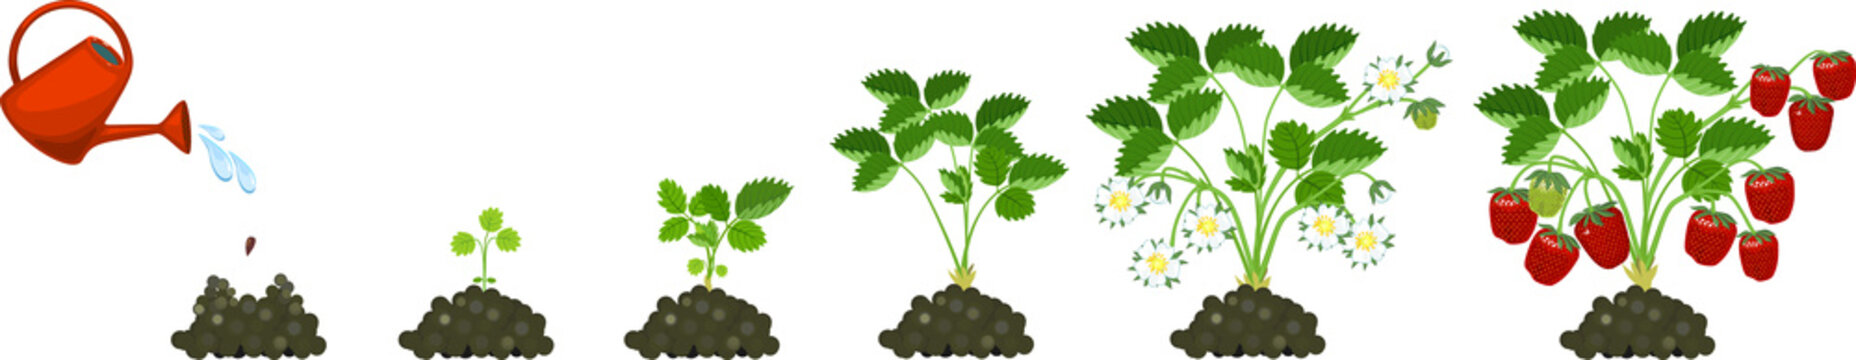 Life cycle of strawberry isolated on white background. Plant growth stage from seed to strawberry plant with ripe berries